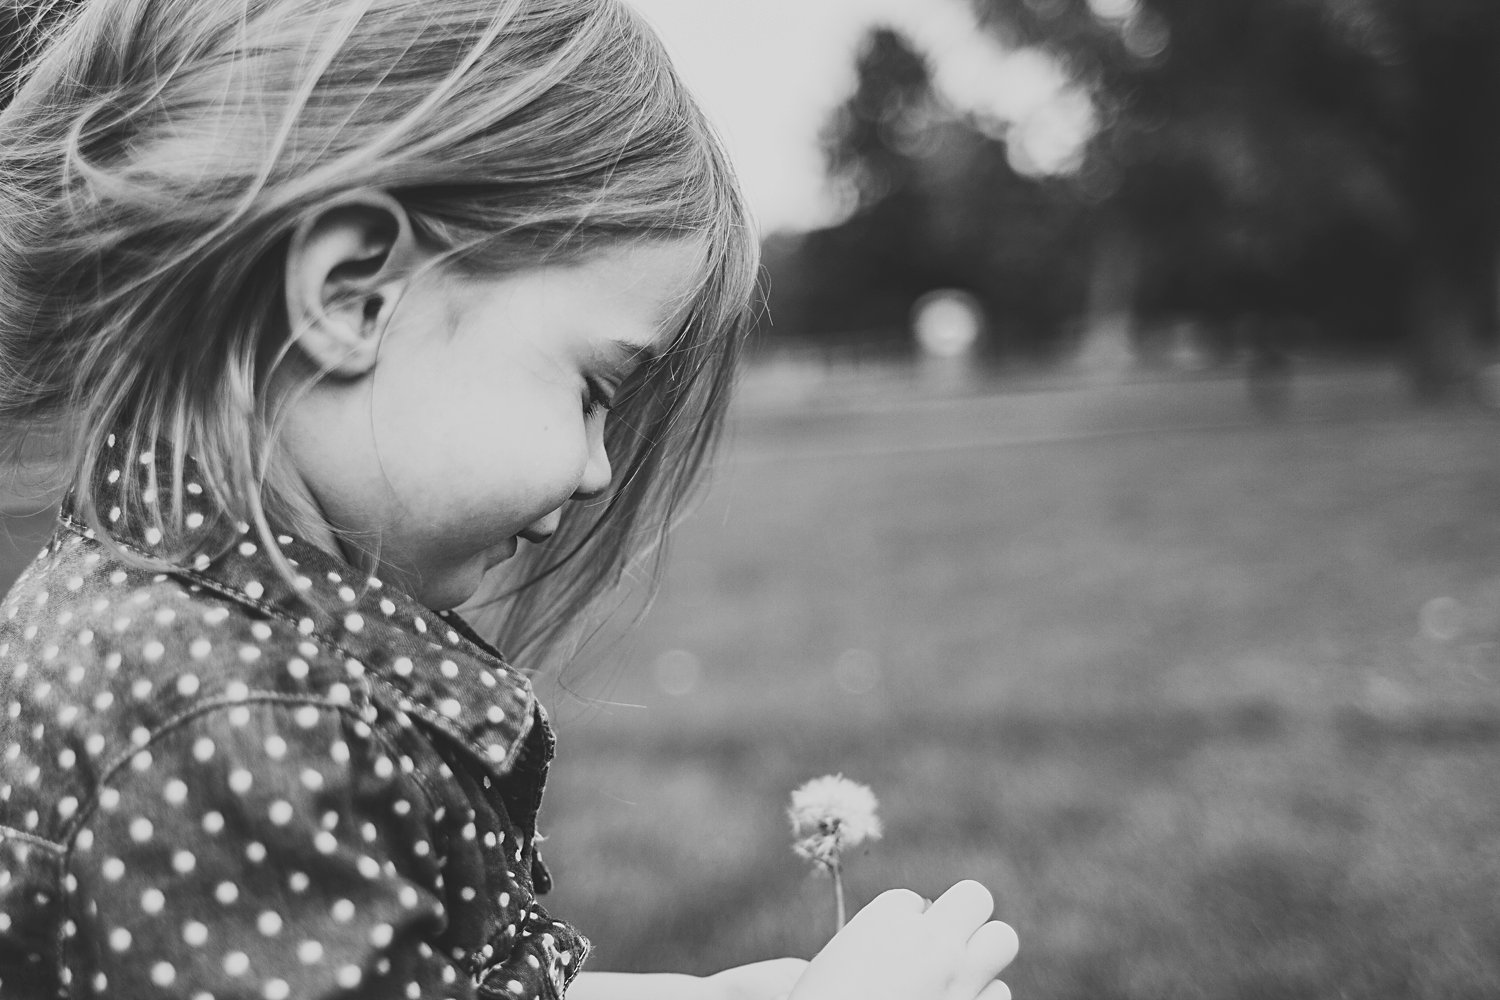 Candid portrait of young girl with dandelion